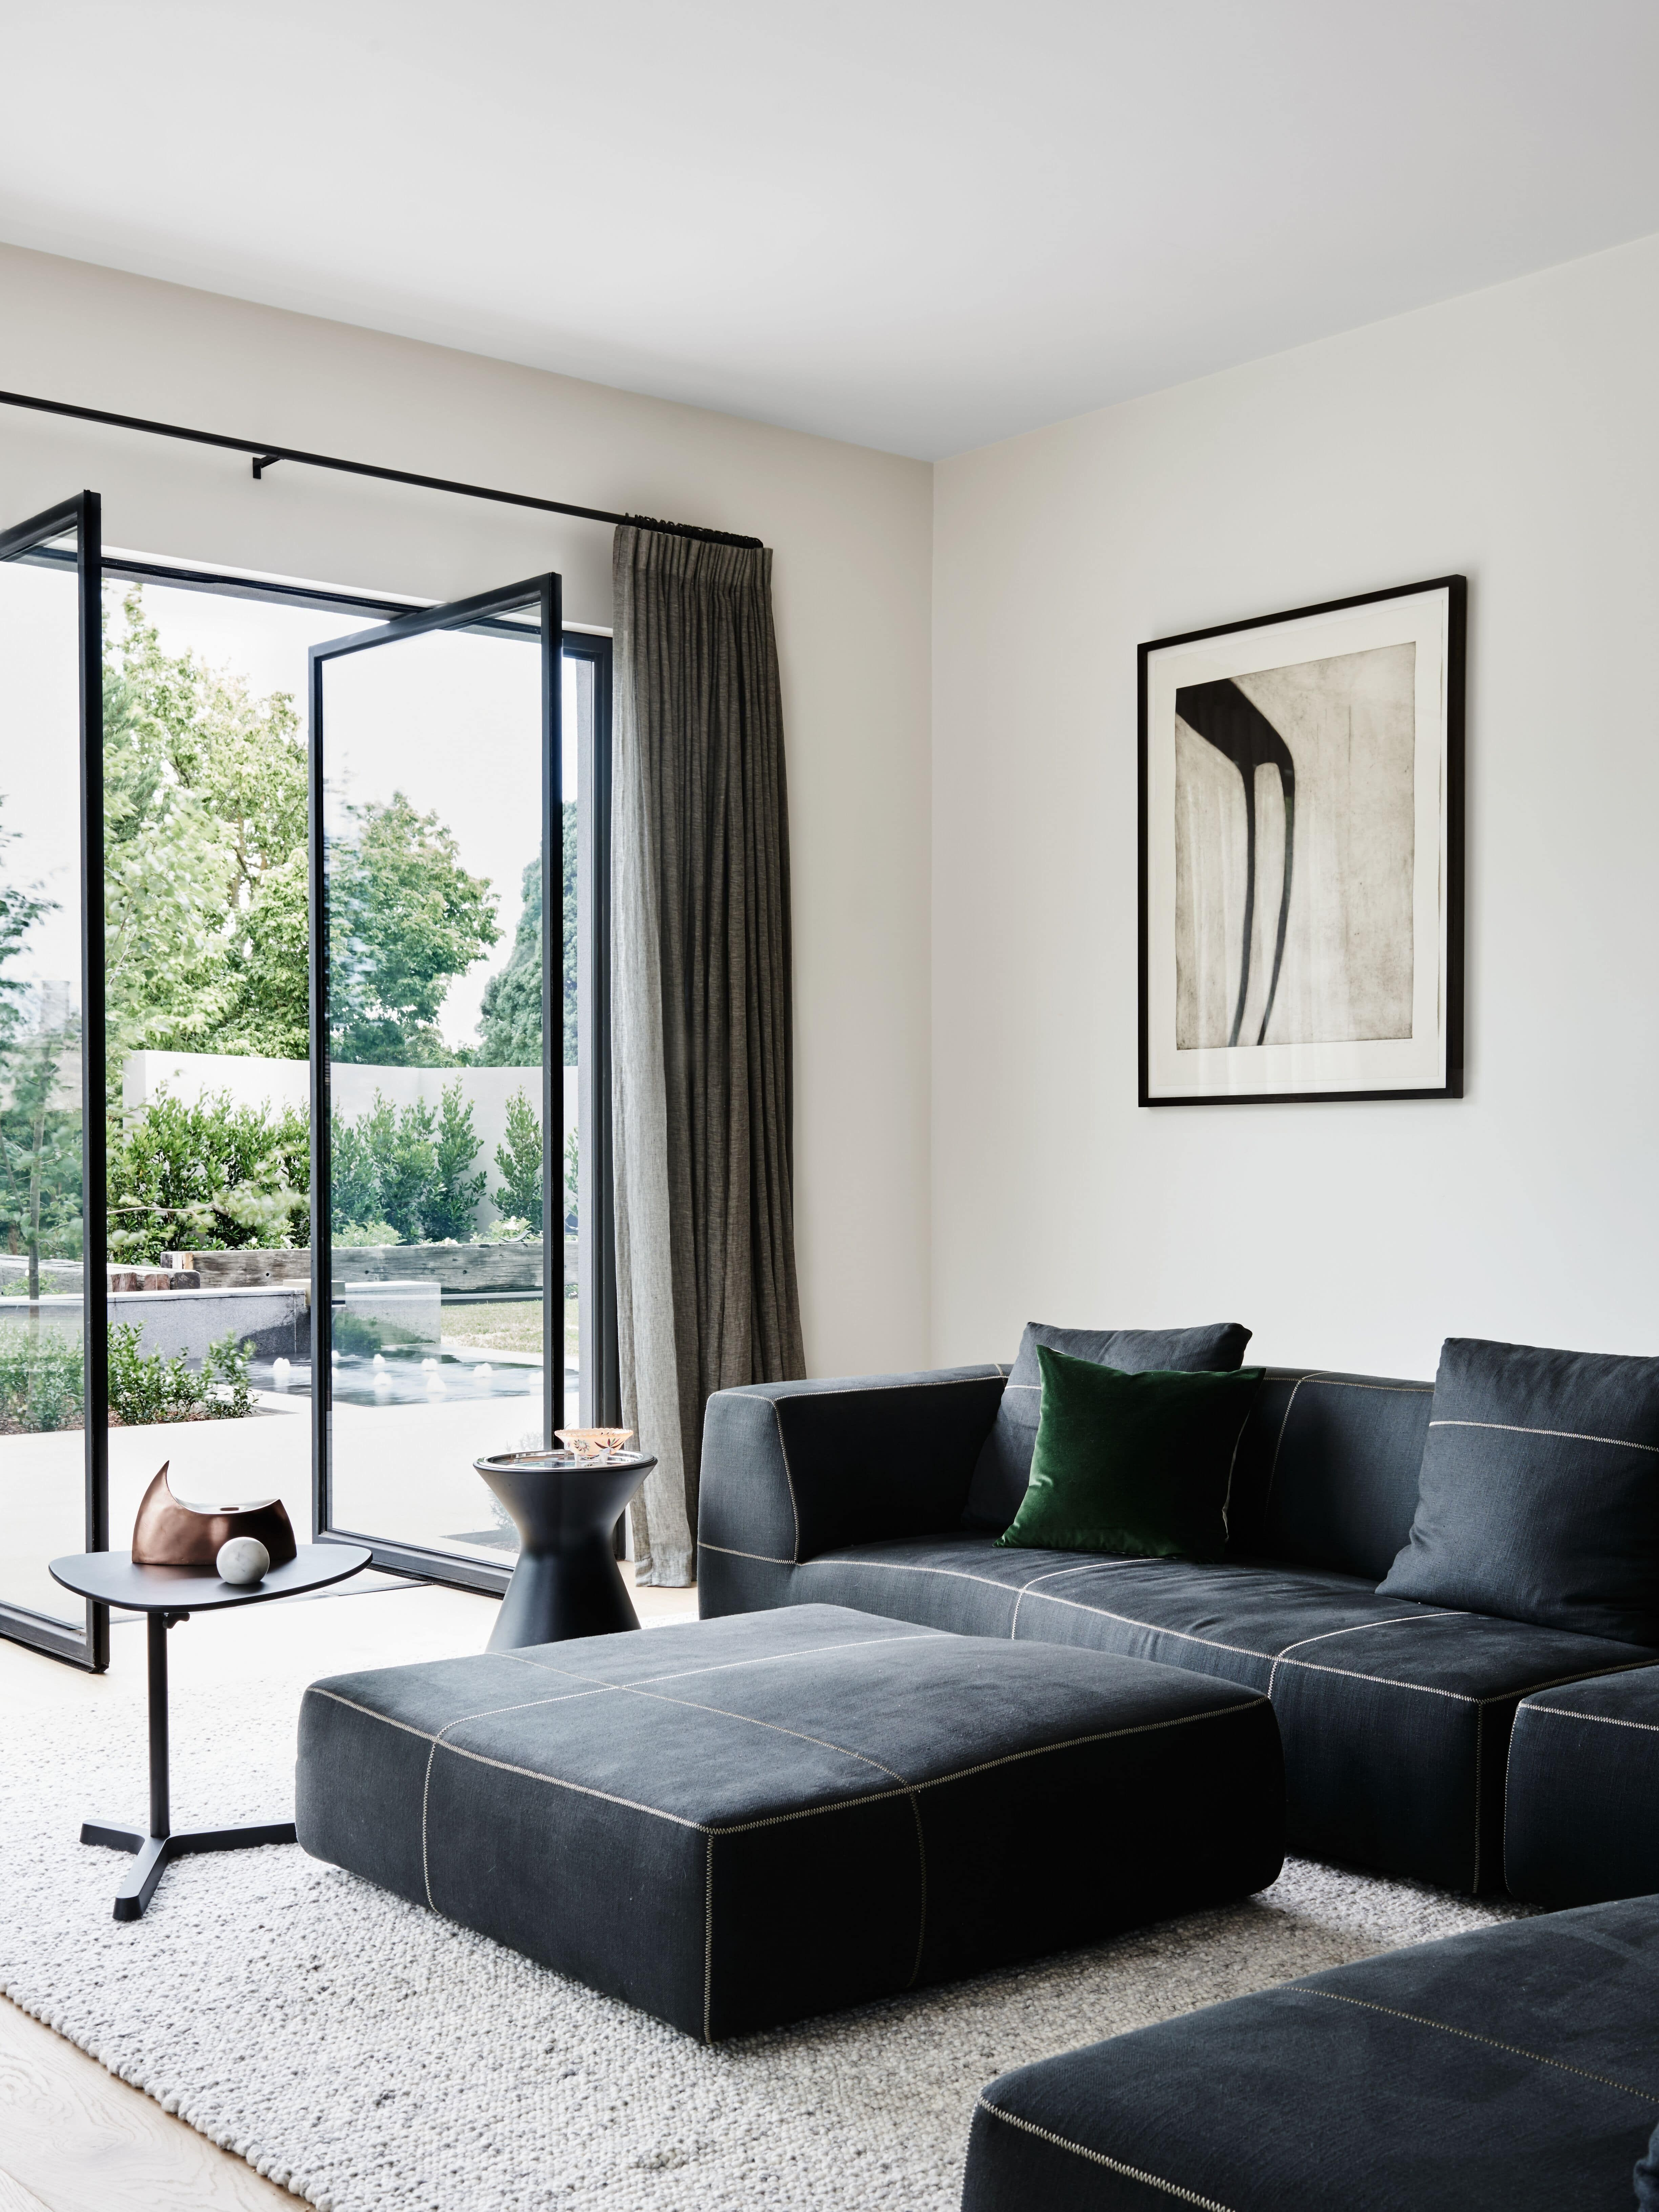 When Faced With A 1980s Georgian Style House In The Melbourne Suburb Of Toorak Robson Rak Saw Past Th Monochrome Living Room Living Decor Home Interior Design